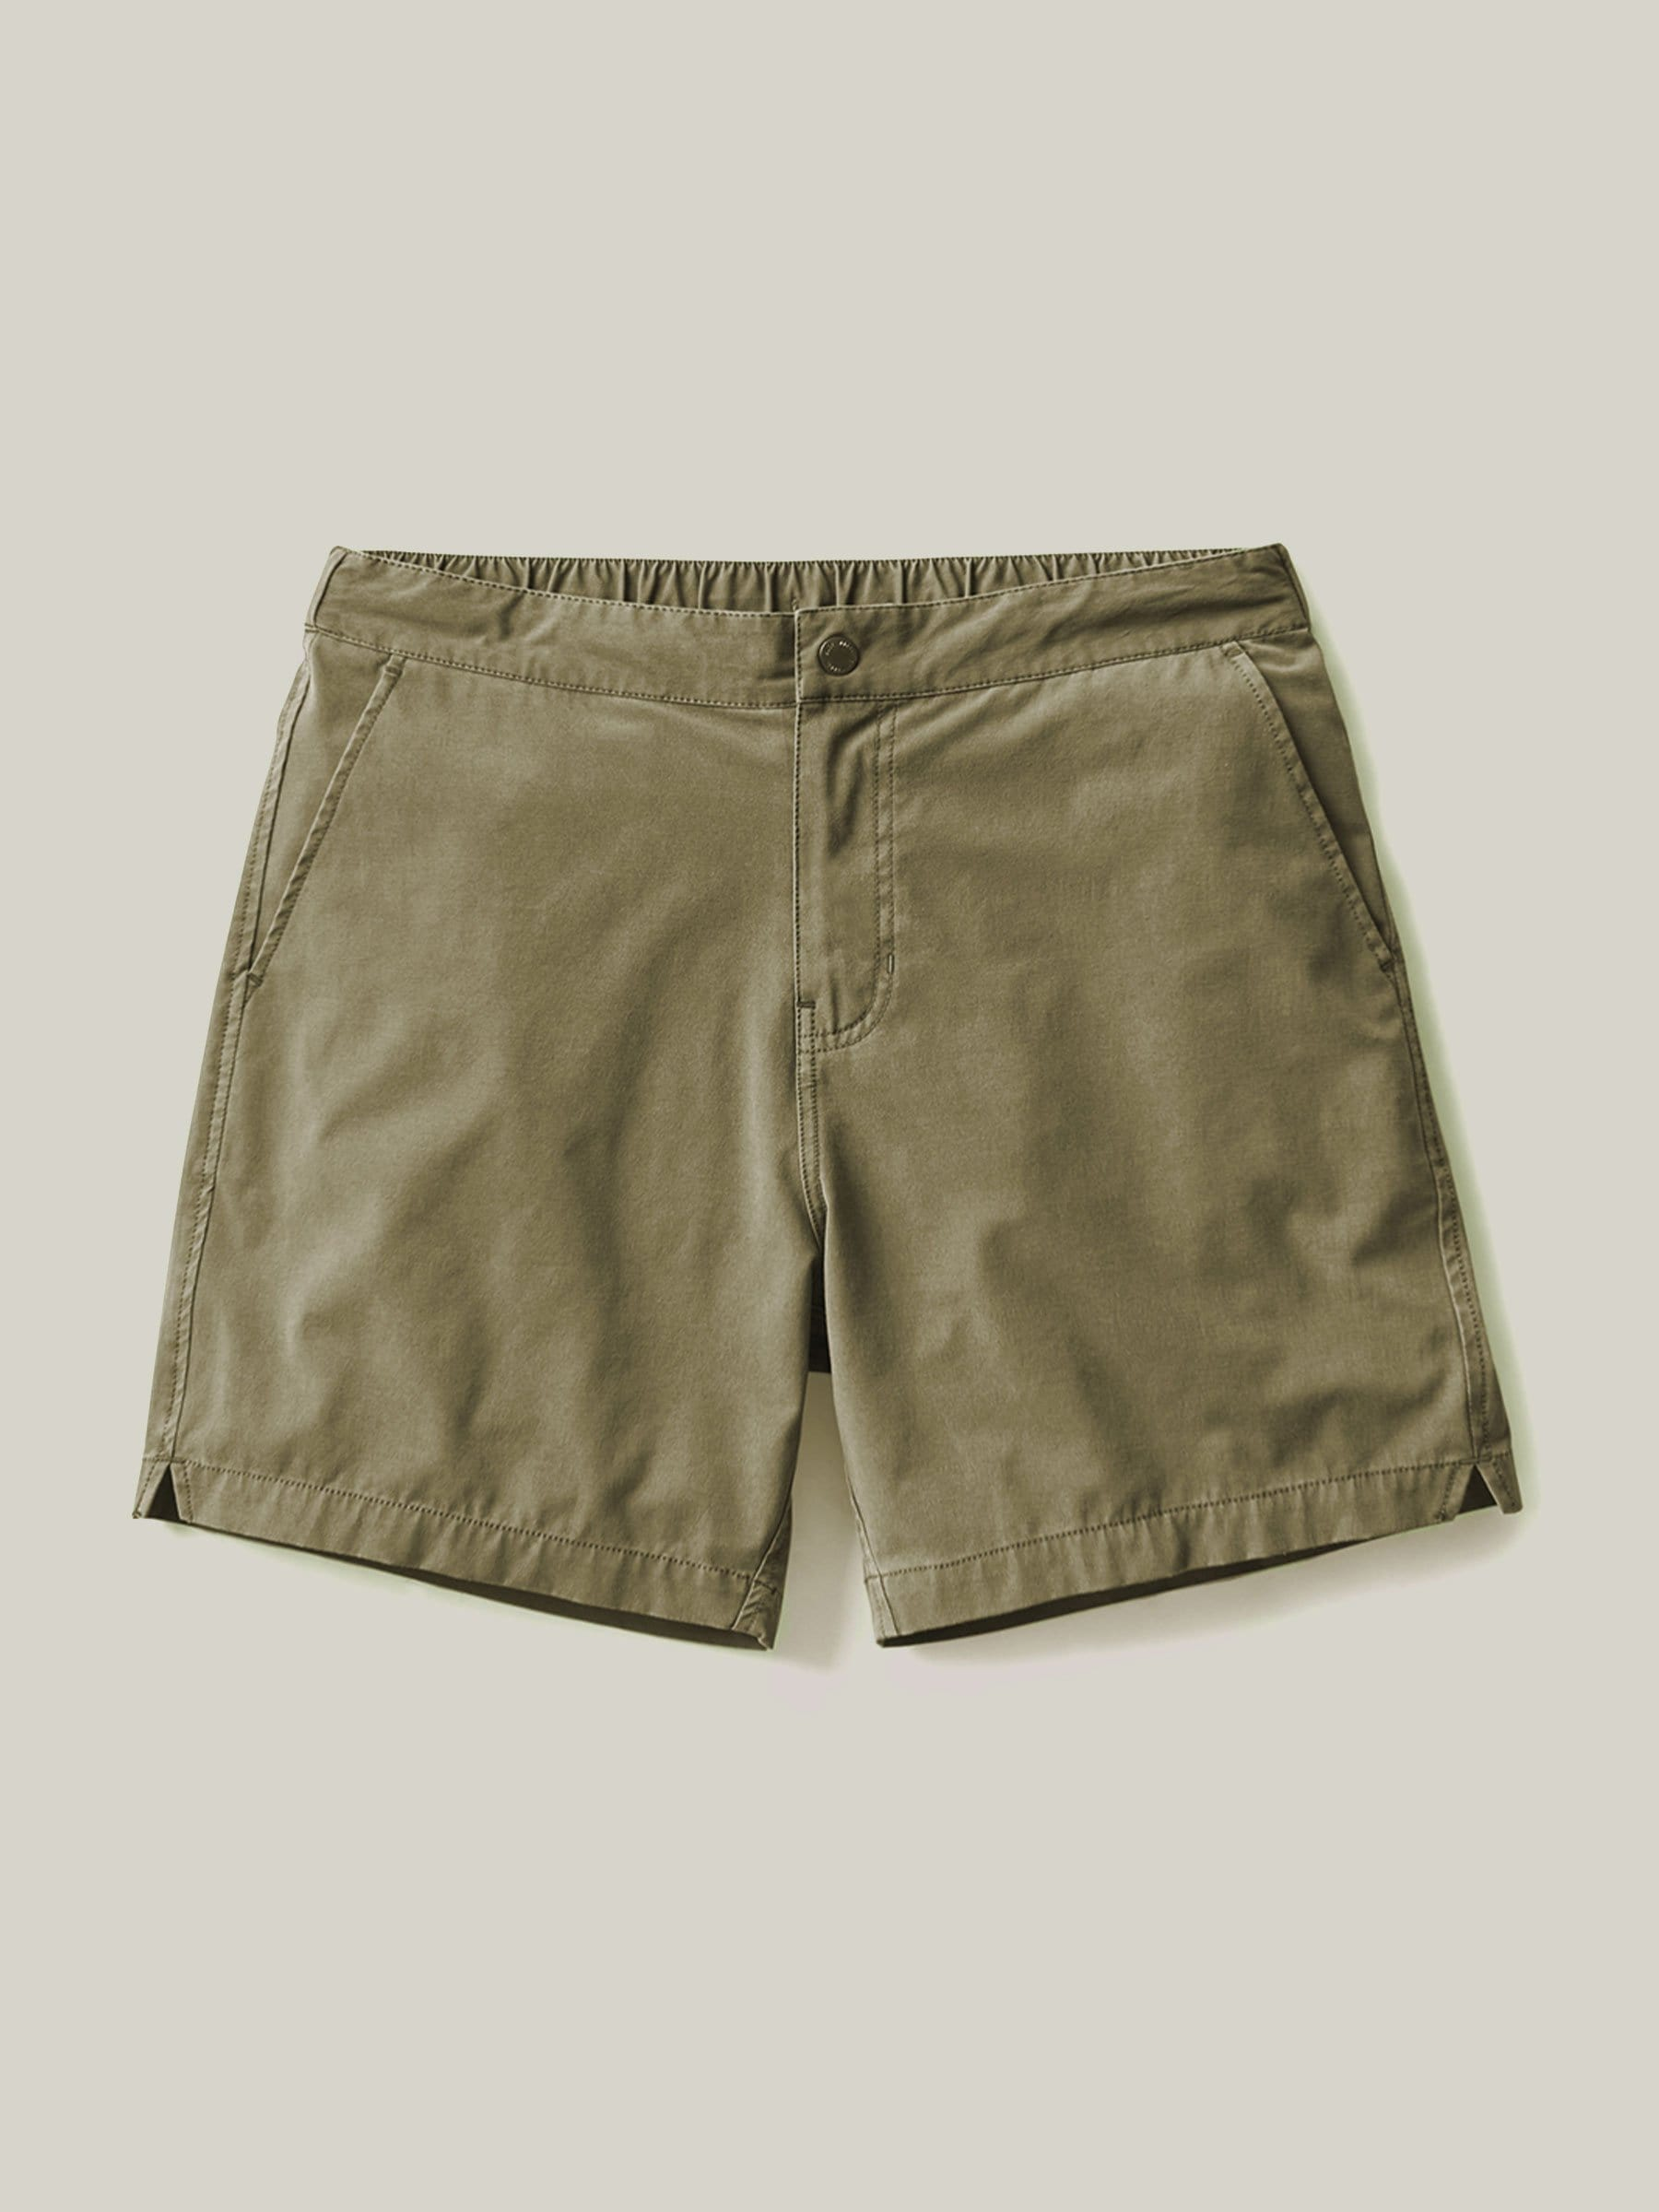 Buck Mason - Vintage Oak Deck Short